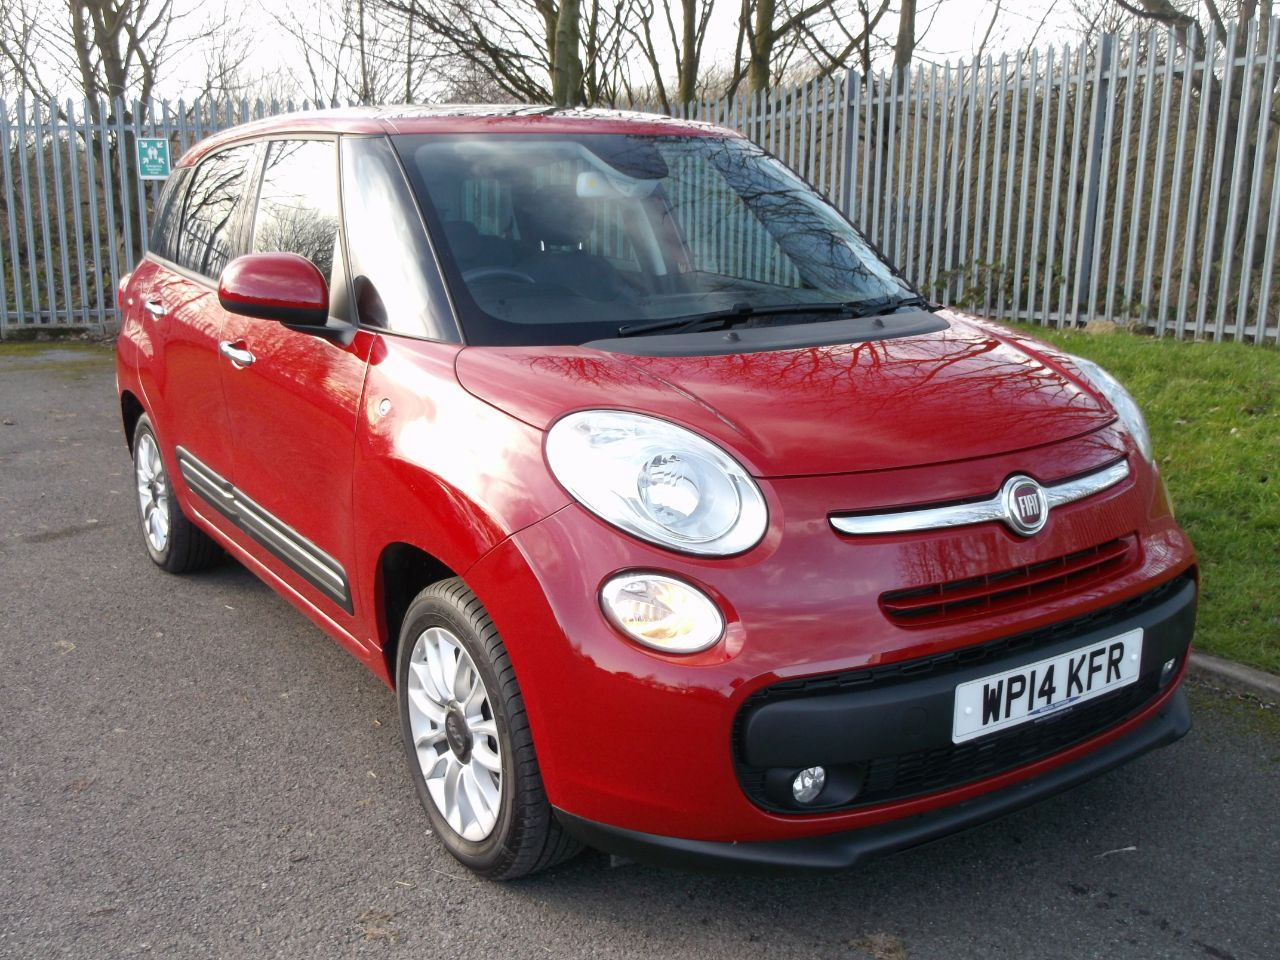 used fiat 500l mpw 1 6 multijet 105 lounge 5dr 7 seat for sale in consett durham bescol motors. Black Bedroom Furniture Sets. Home Design Ideas